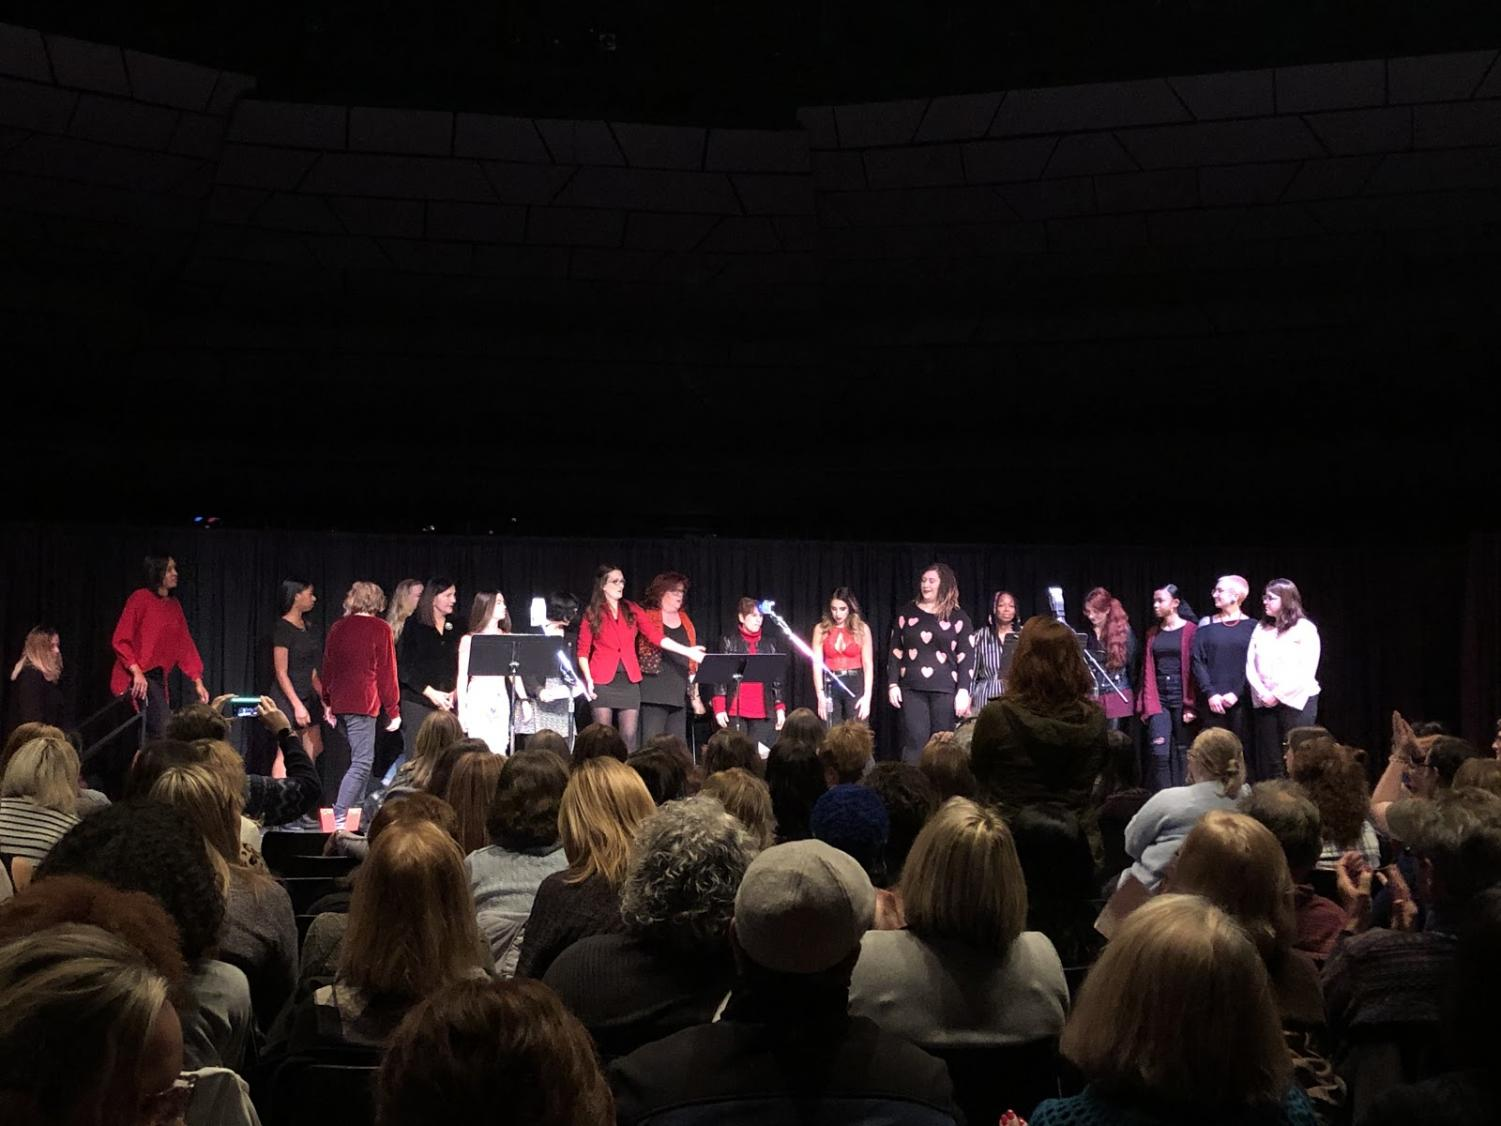 The cast of UA students, faculty and staff, as well as Akron community members, on stage.